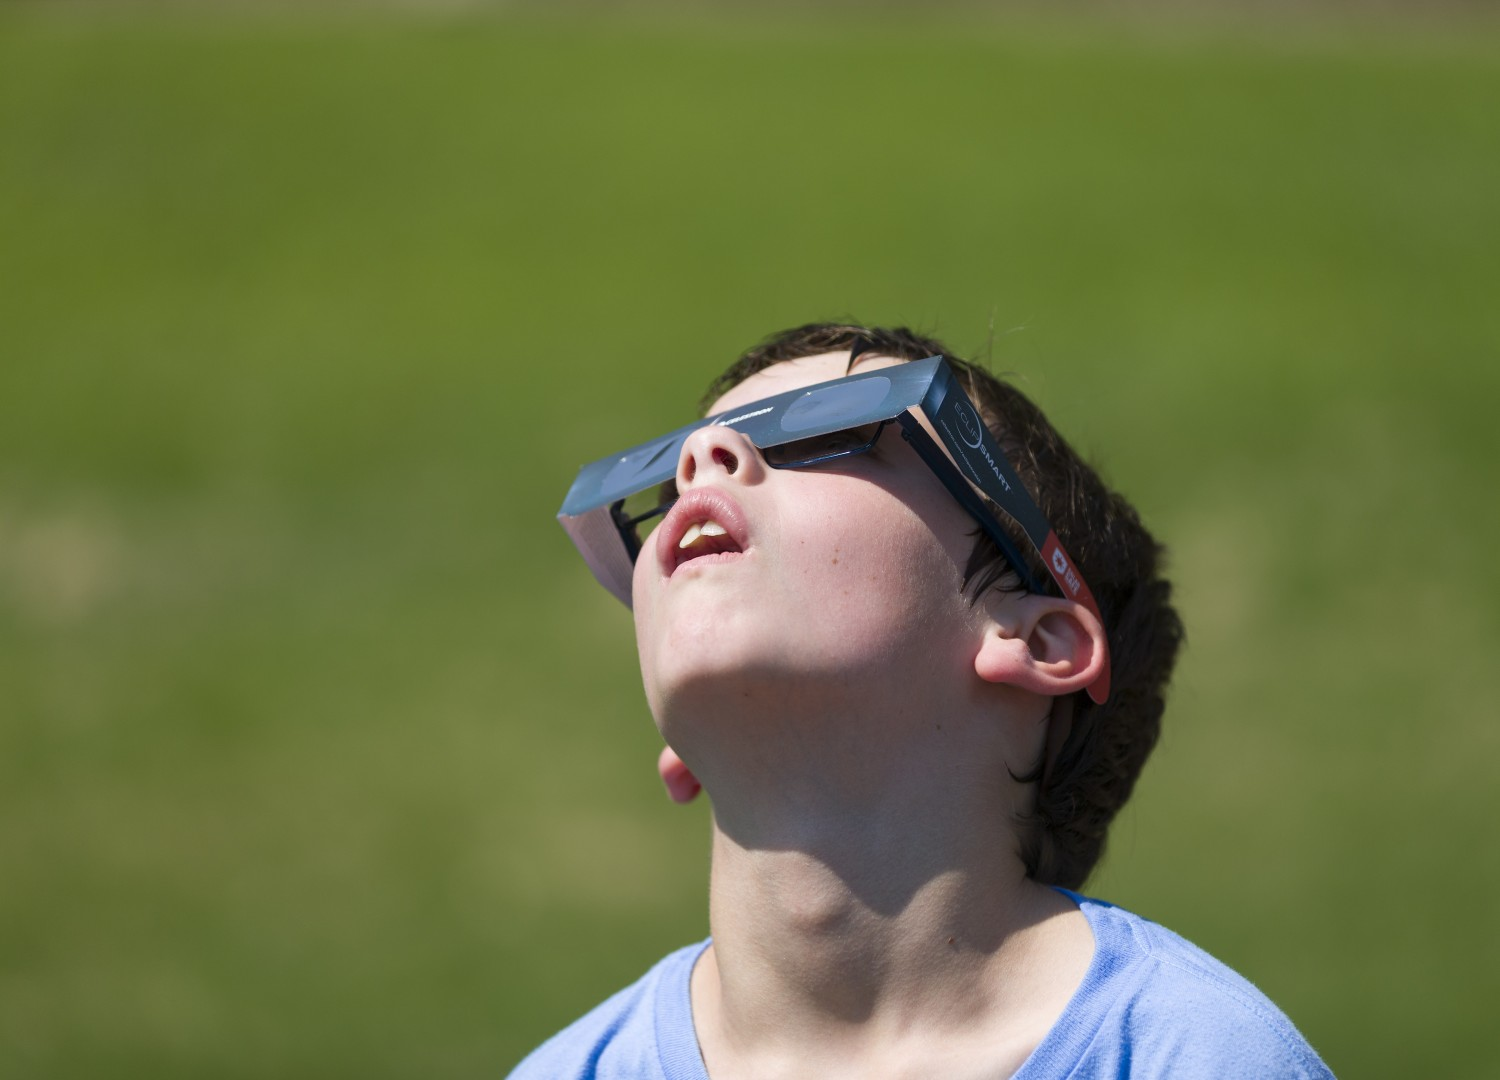 Many people donned their eclipse glasses at North Cary Park Aug. 21 to witness the solar eclipse.